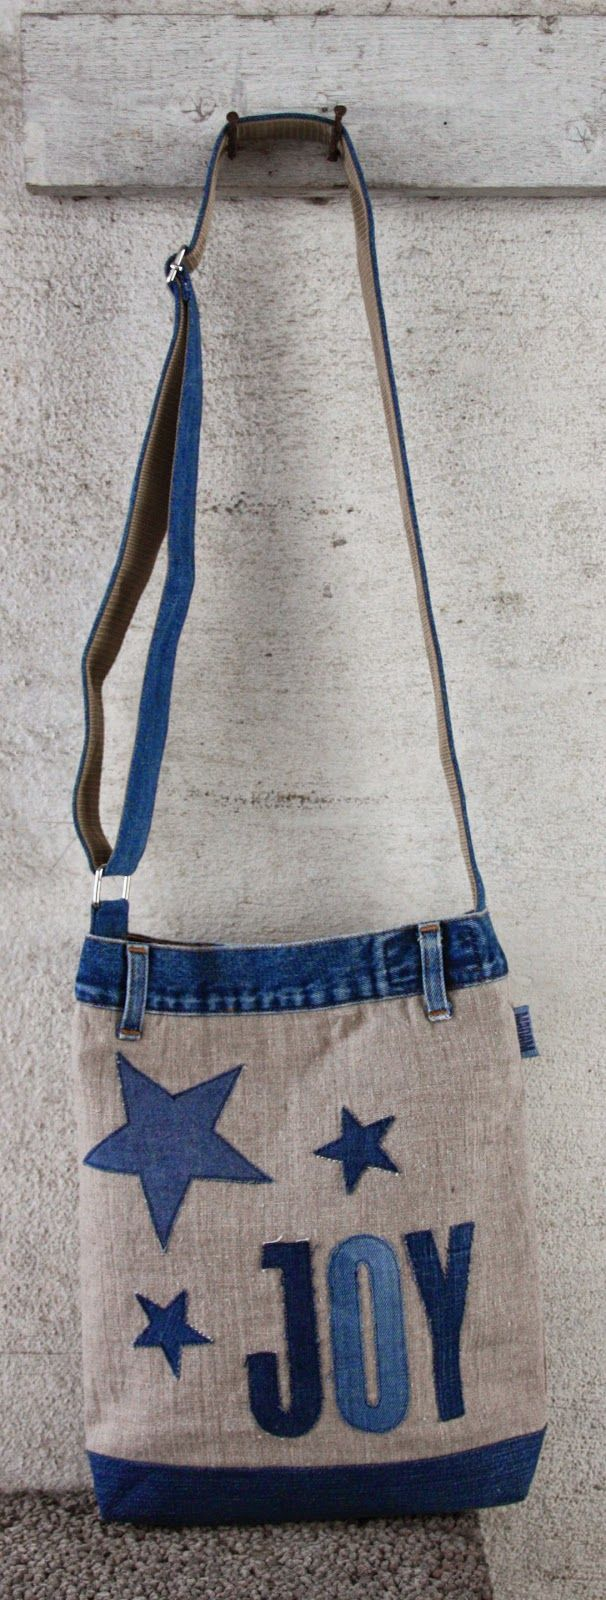 Bag made from linen and recycled jeans